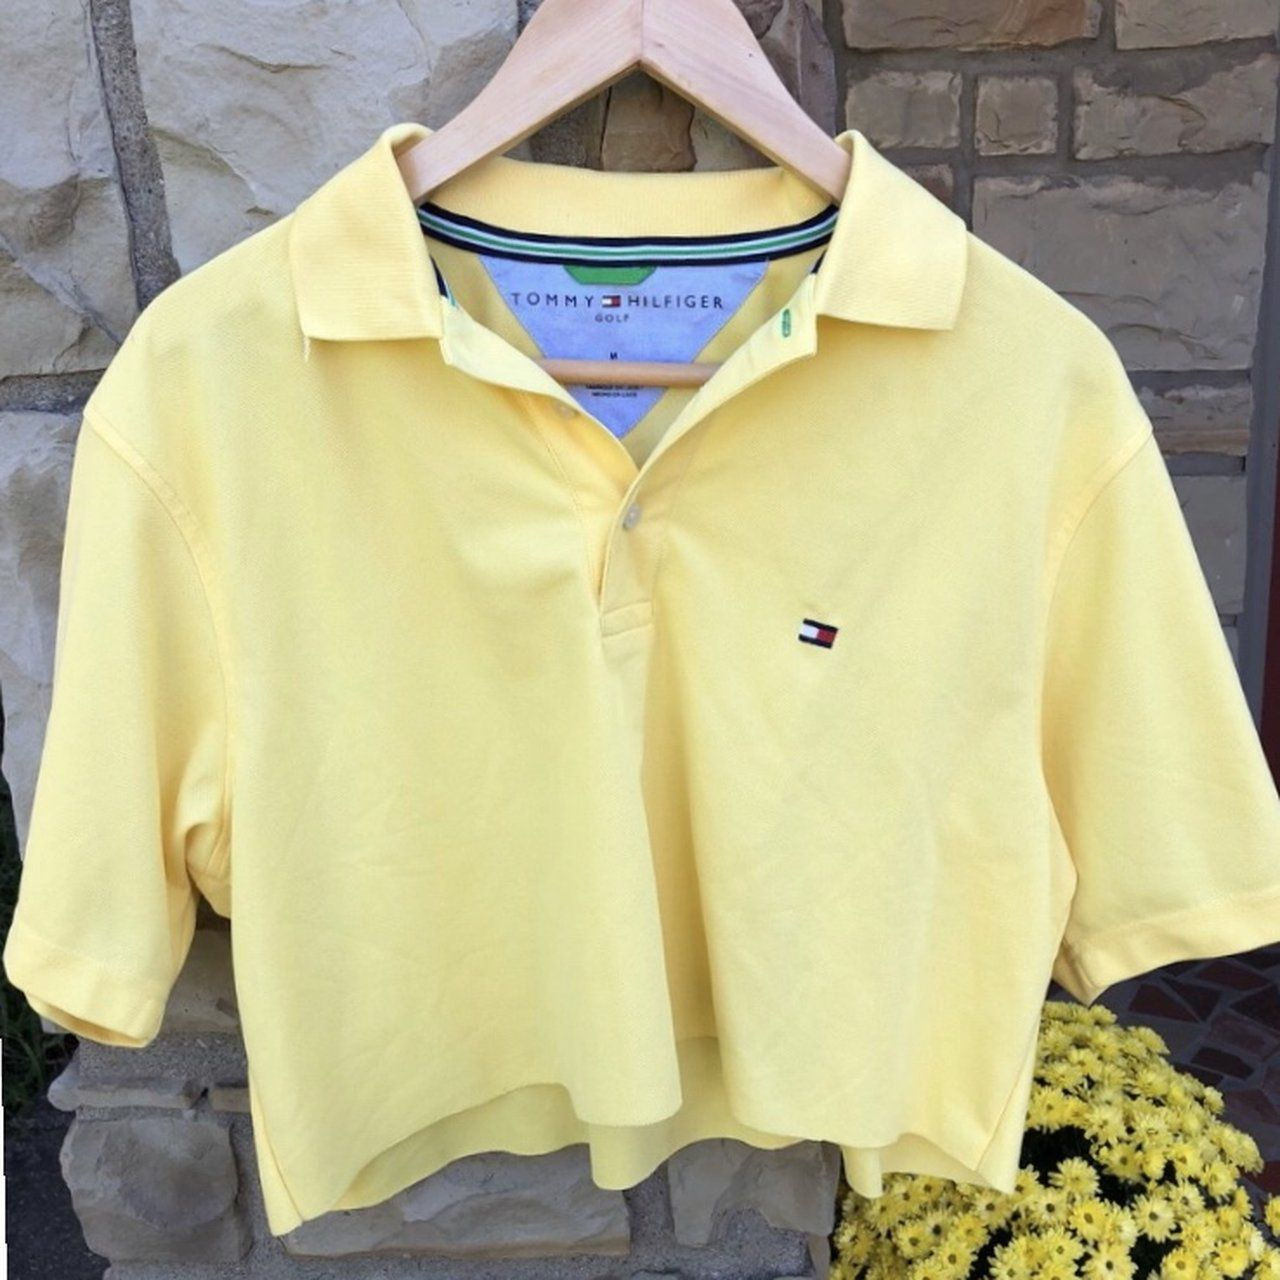 1a8dfae8d36e tommy hilfiger slight cropped polo shirt ~no flaws ~emma to - Depop